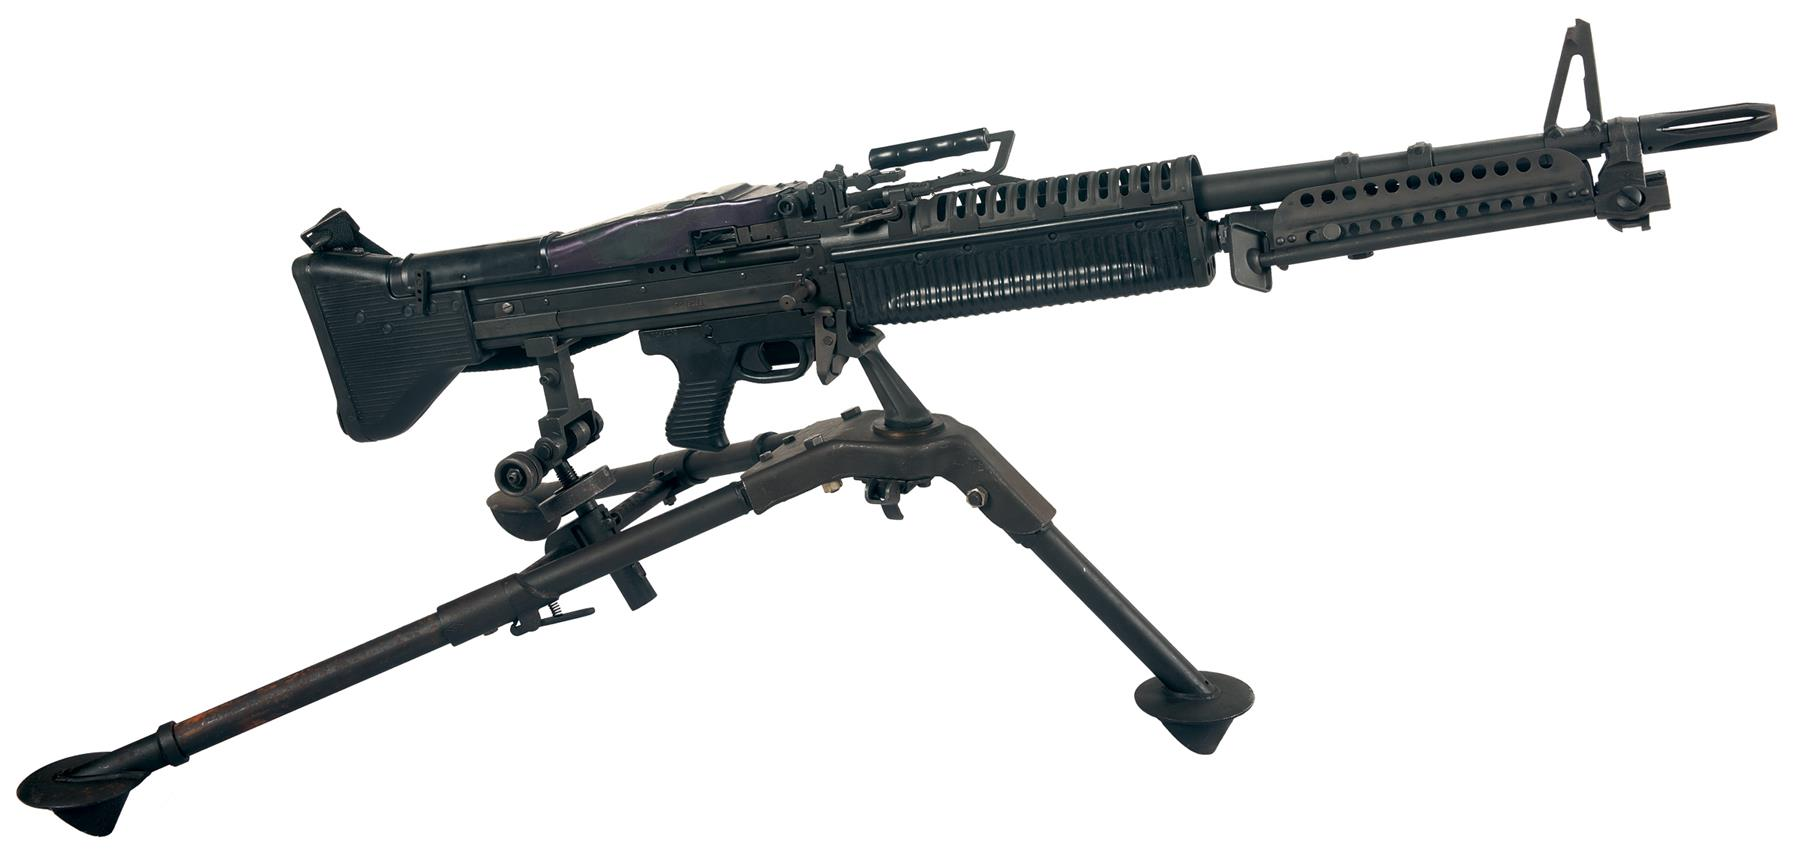 Maremont Co  M60 Rifle 7 62 mm (308 Win)